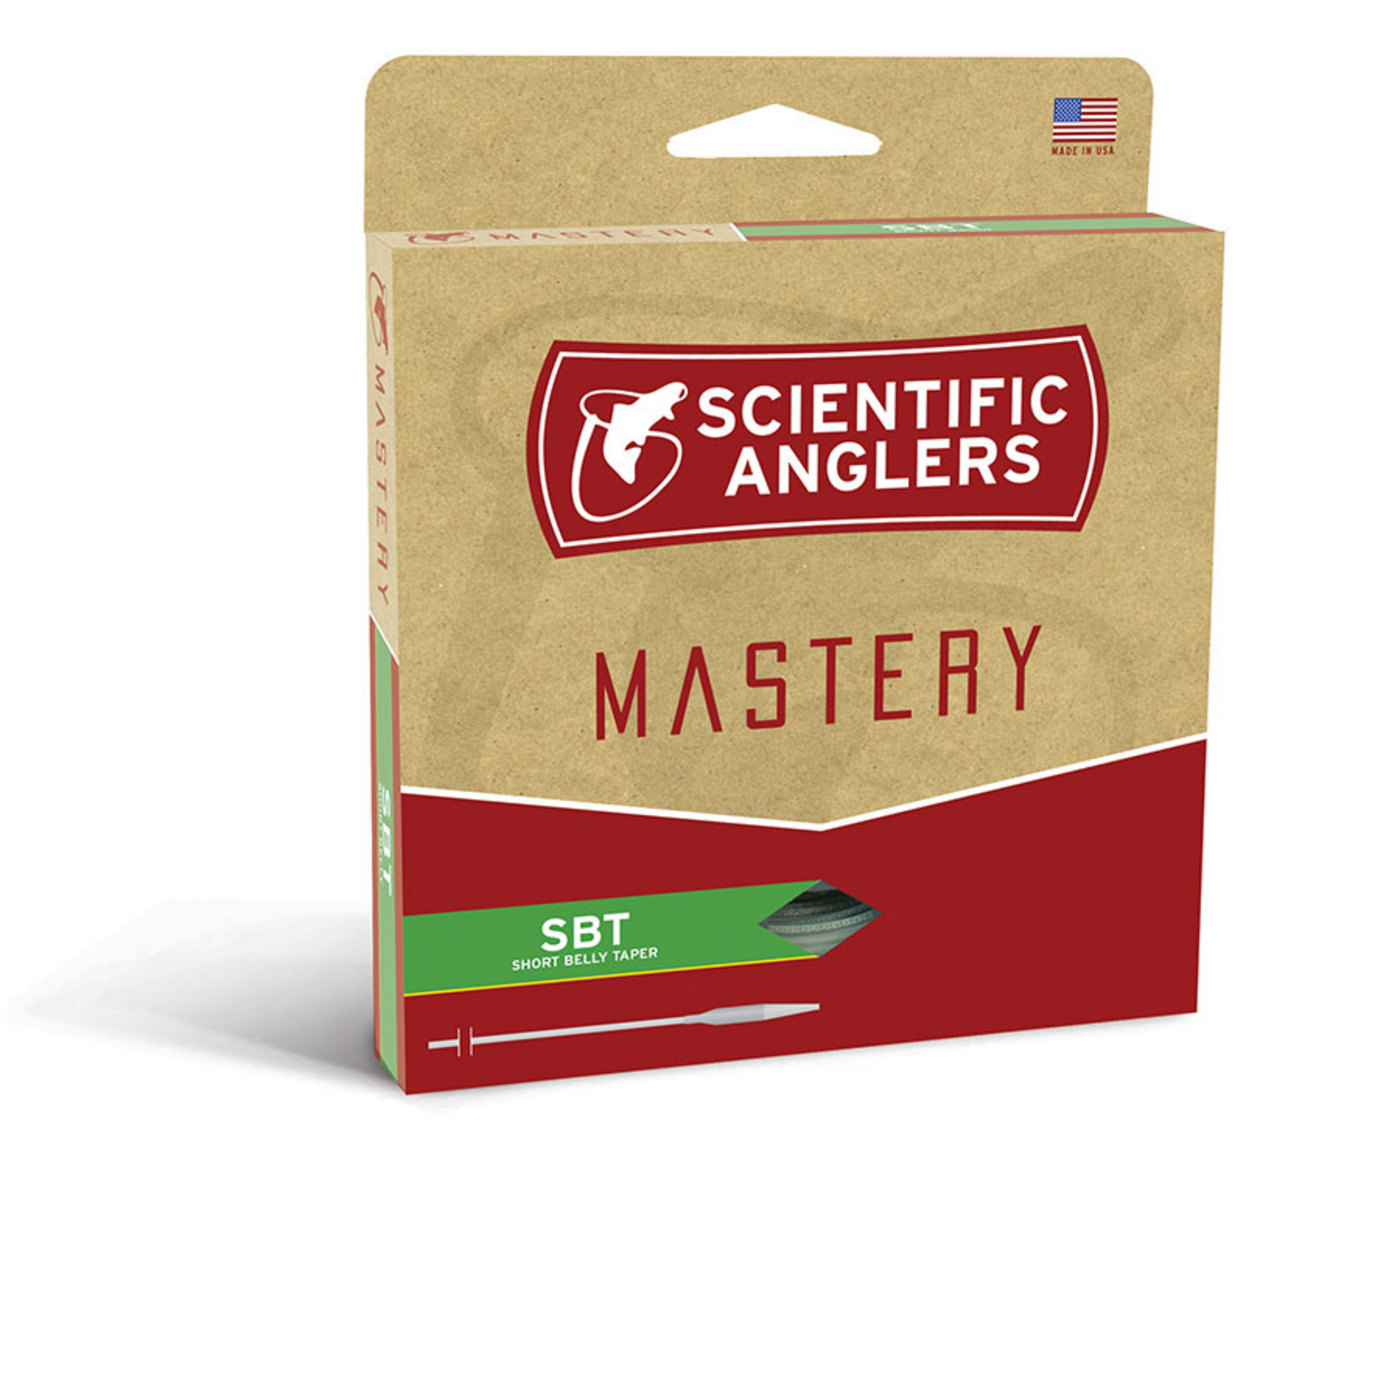 Scientific Anglers Mastery Short Belly Taper Fly Line with Loop WF5F